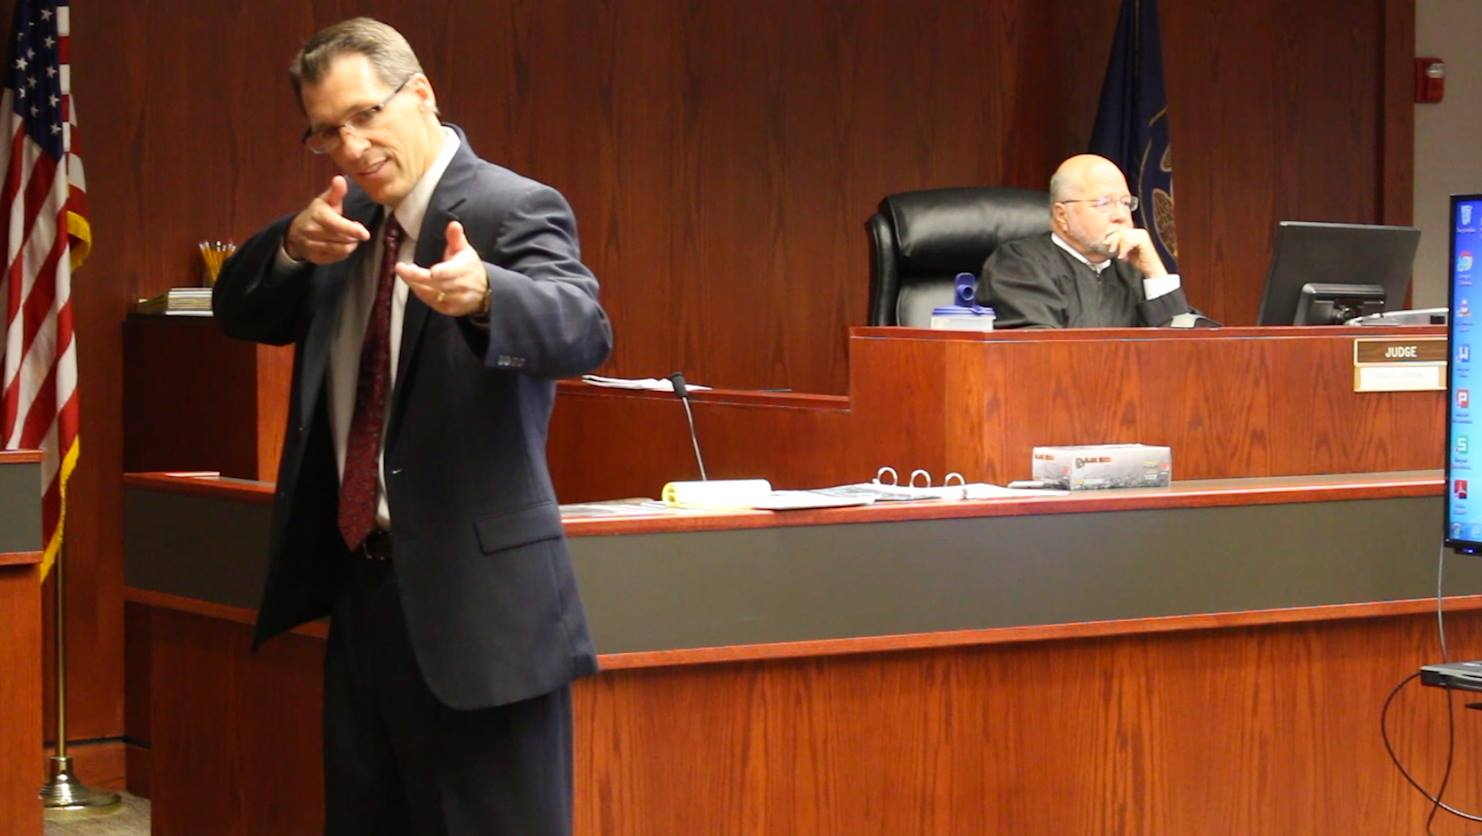 Iron County Attorney Scott Garrett describes for the jury how Grant Louis Biedermann aimed the gun at two deputies during his closing argument Wednesday in Cedar City, Utah, June 15, 2016   Photo by Mike Cole   St. George/Cedar City News